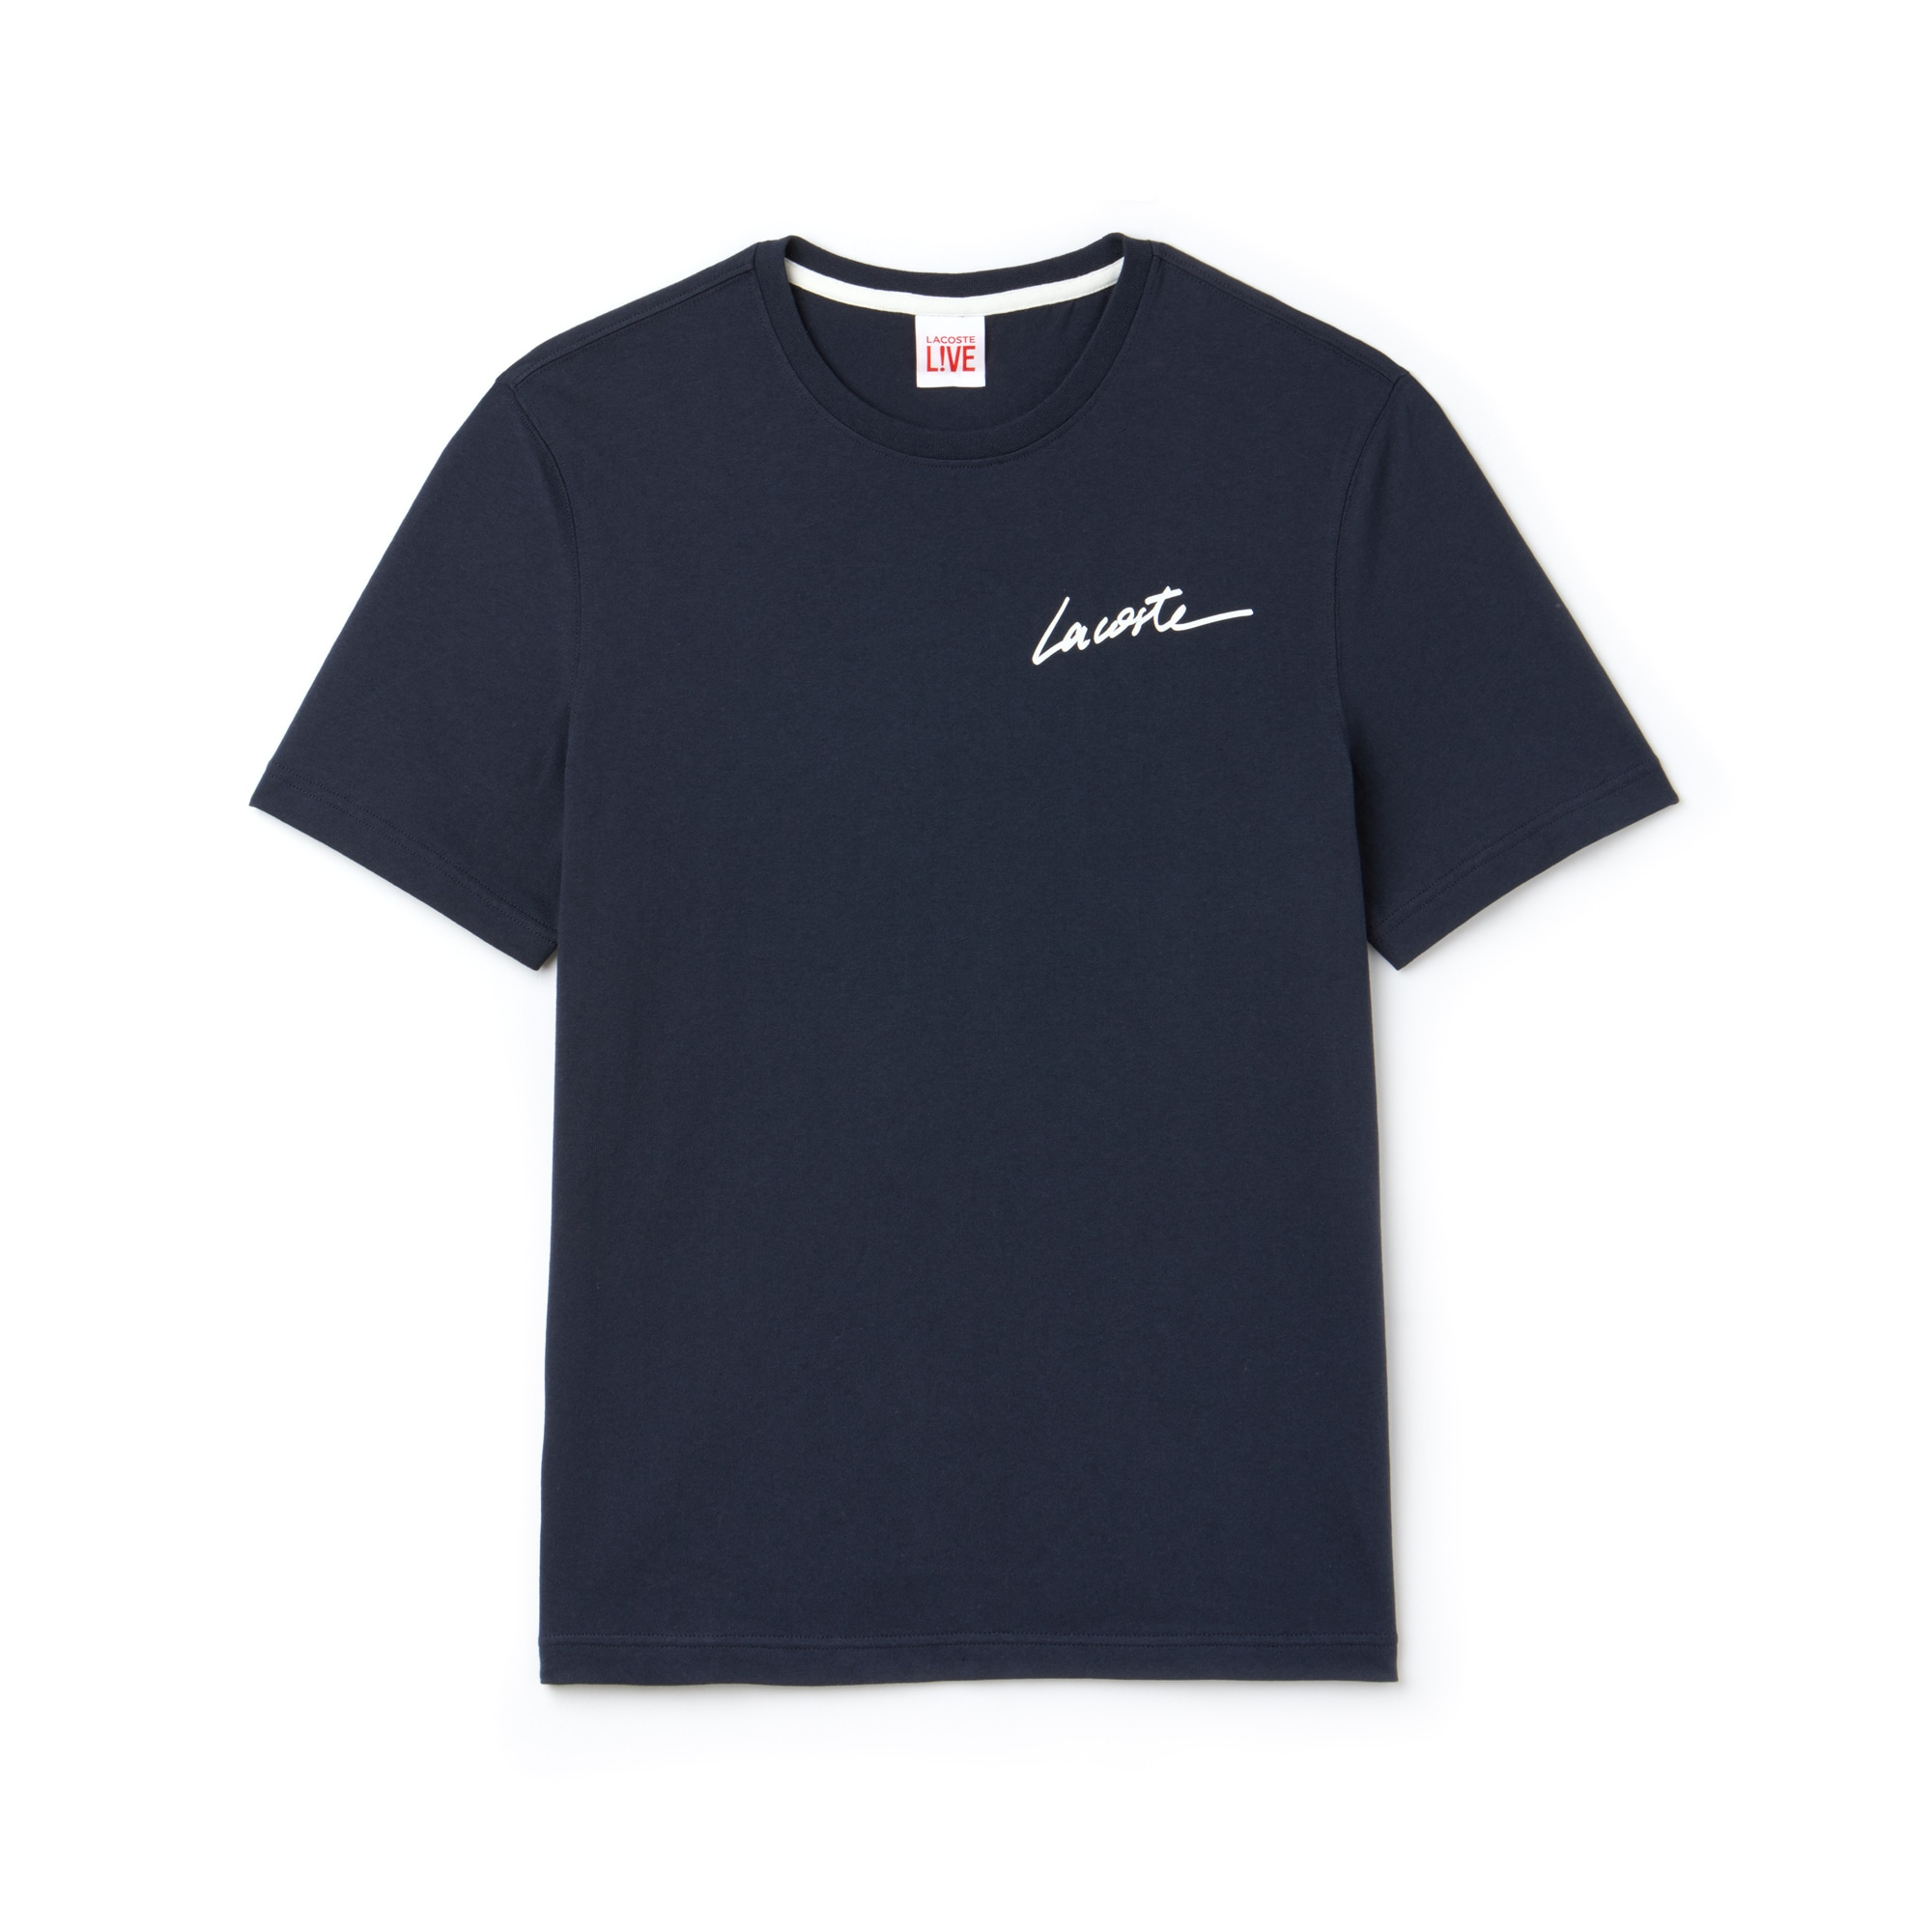 T-shirt a girocollo Lacoste LIVE in jersey con logo Lacoste